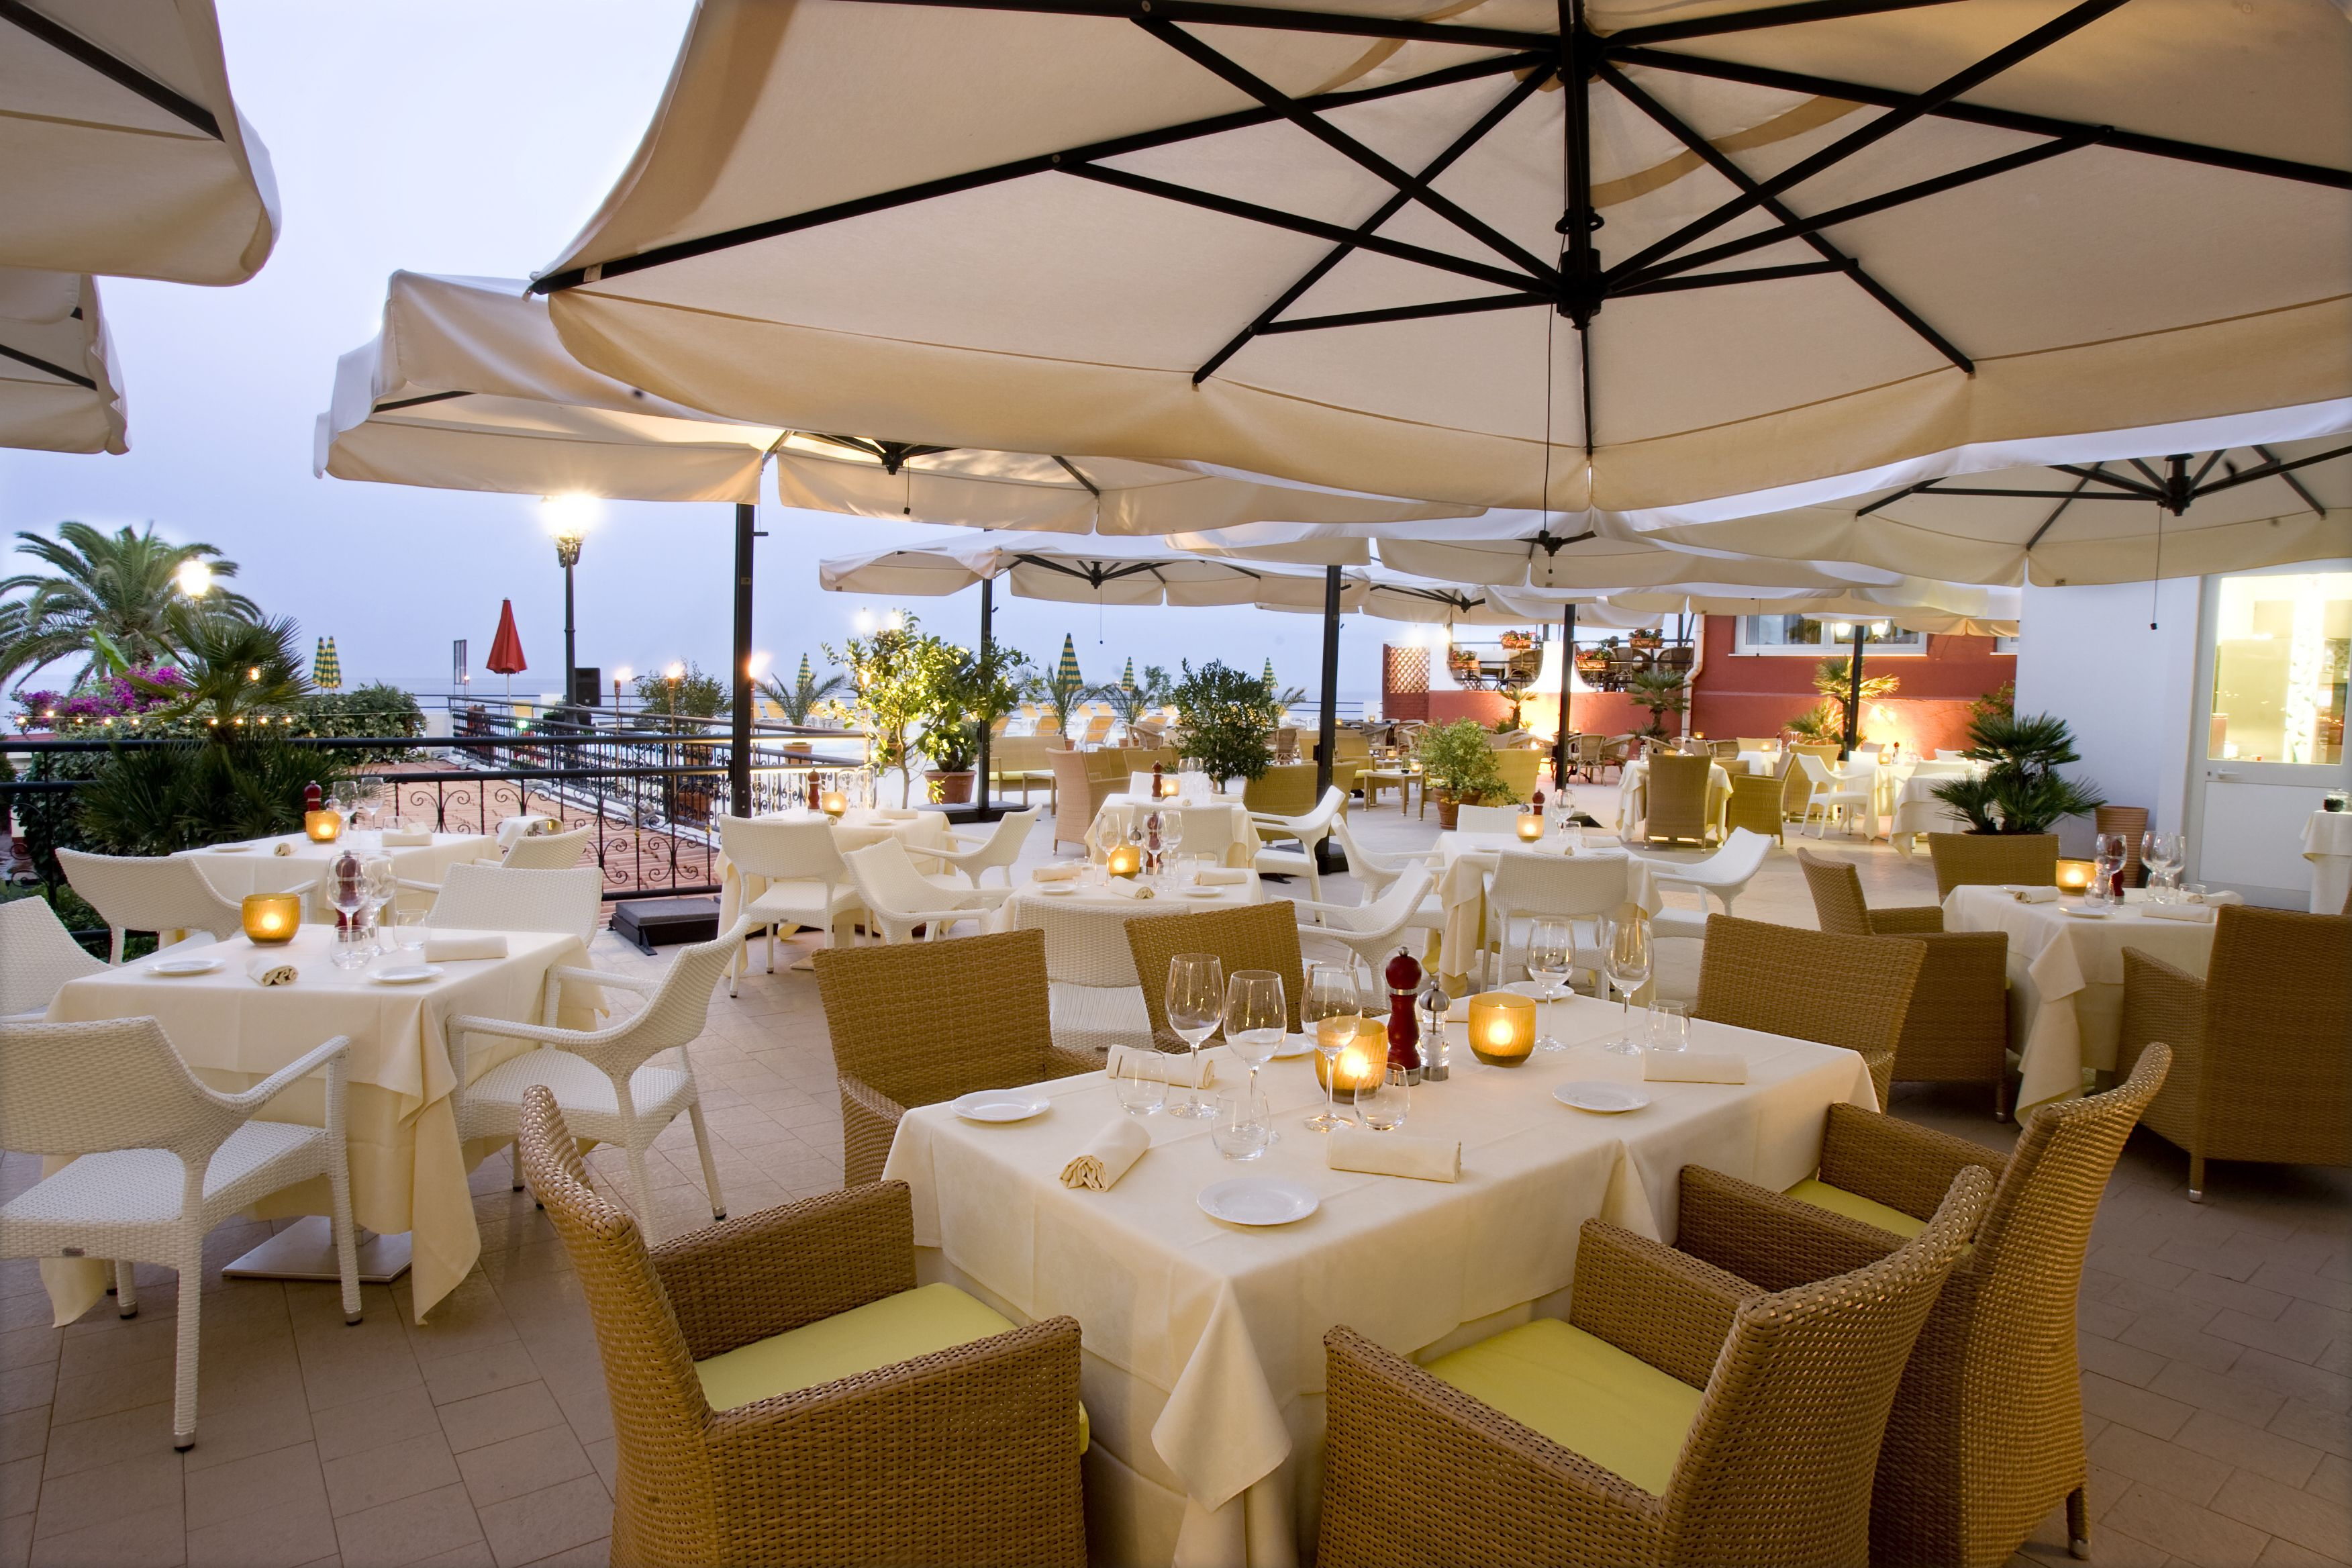 Wine barHilton, Giardini Naxos Sicily (With images